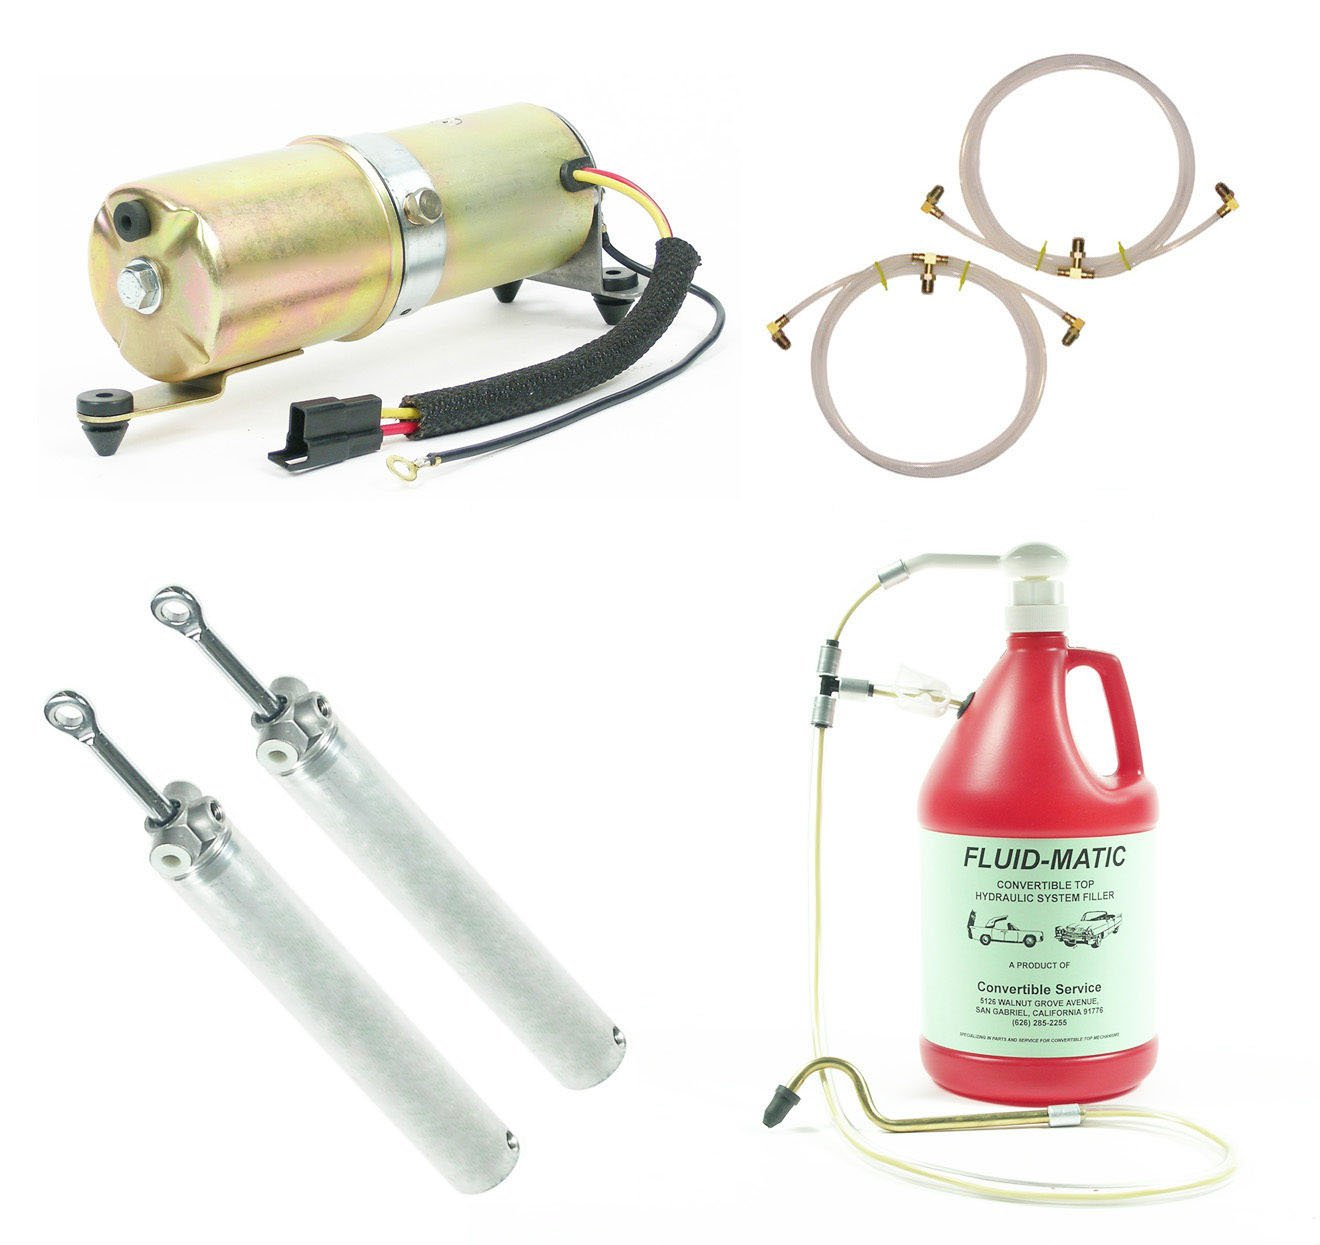 Convertible Top Hydraulic System Cylinders Hoses & Motor. FITS ALL 68-72 GM Mid Size Chevrolet Pontiac Olds Buick by Convertible Service